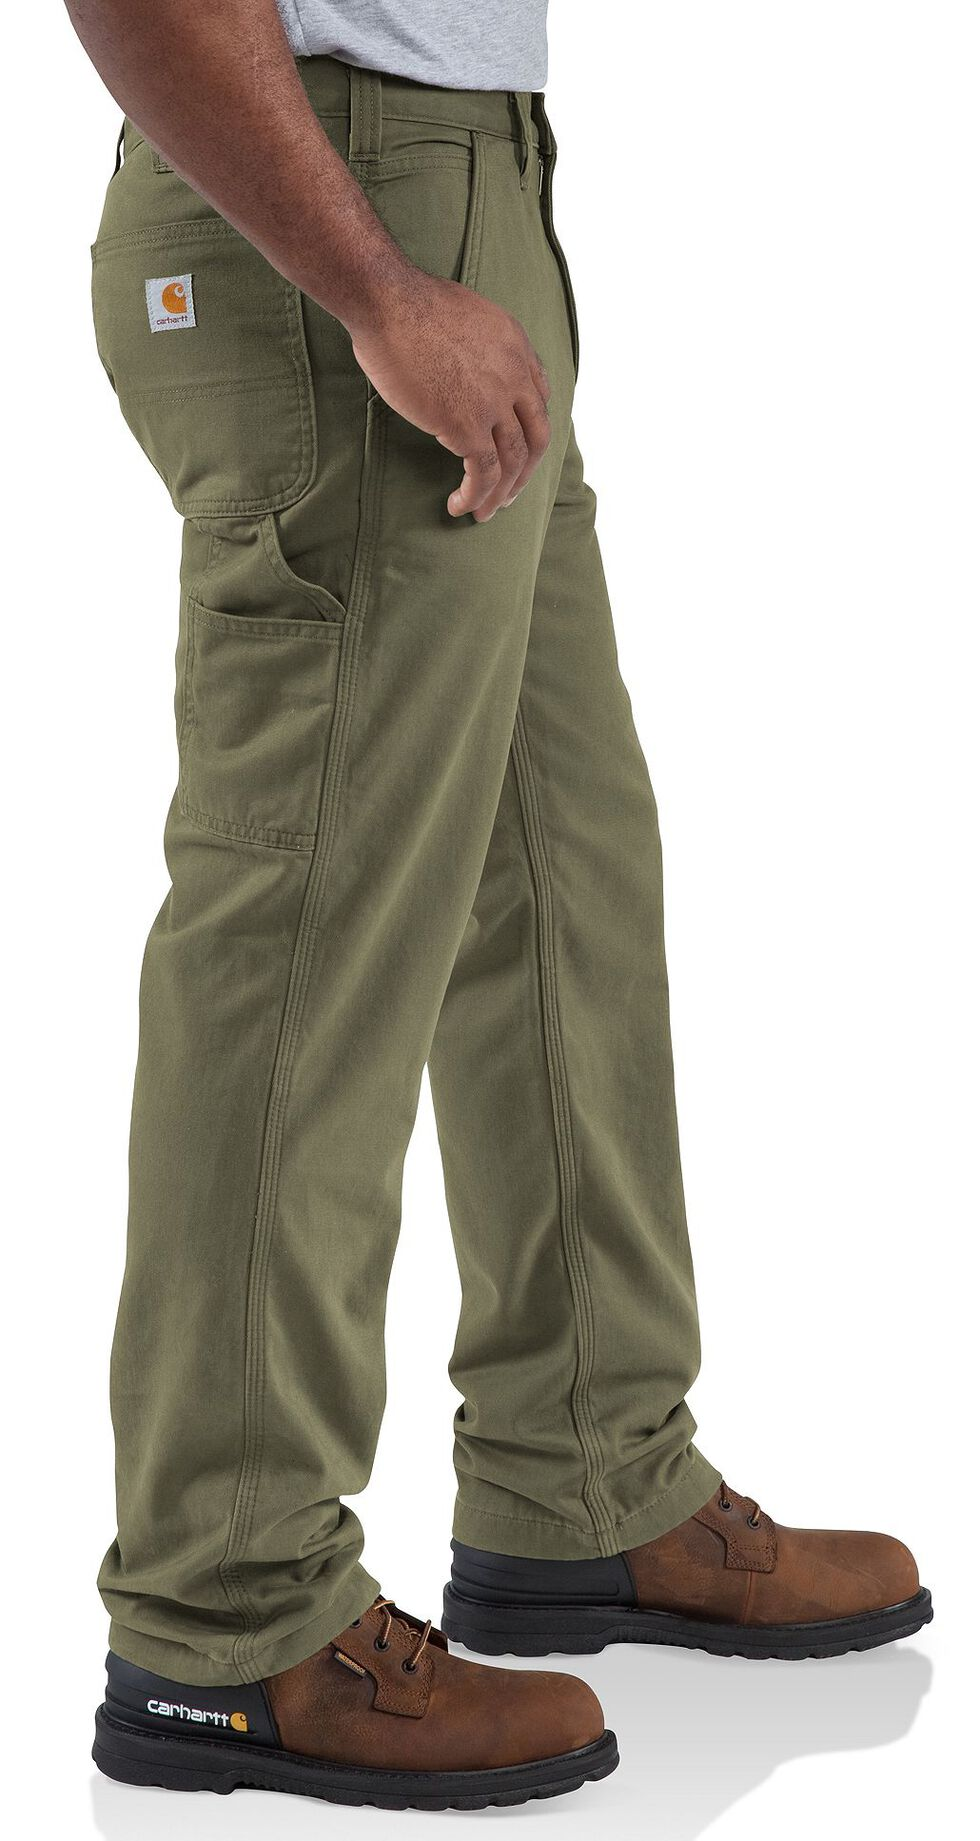 Carhartt Washed Twill Dungaree Flannel-Lined Pants, Army, hi-res